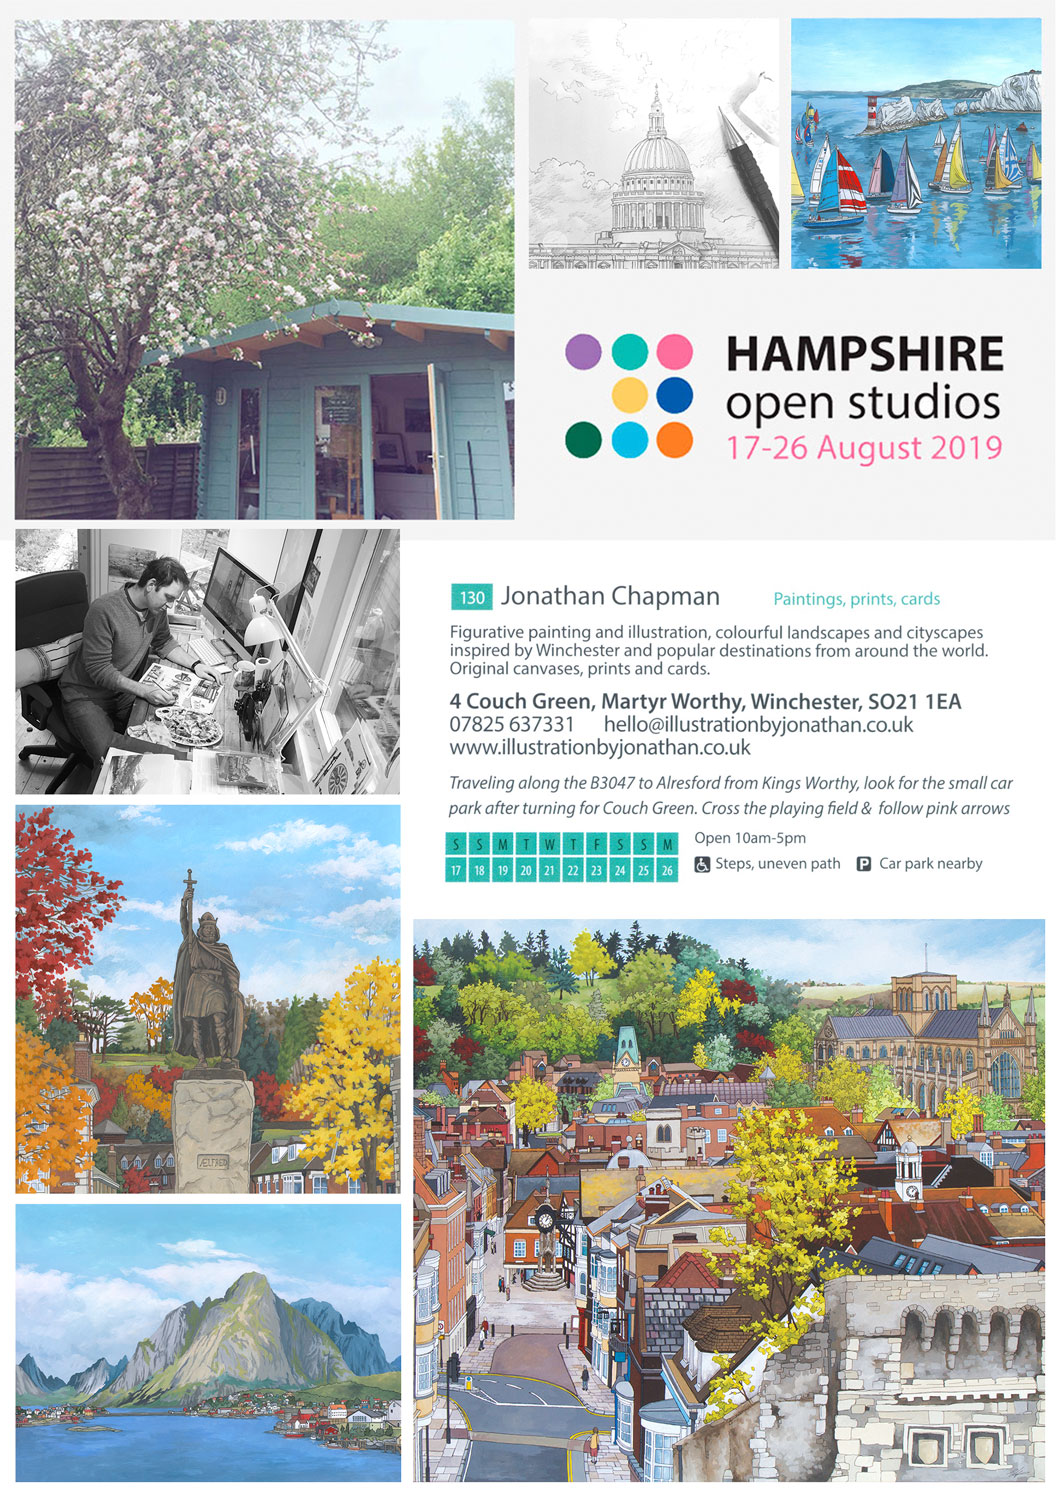 Hampshire Open Studios 2019, visitor information